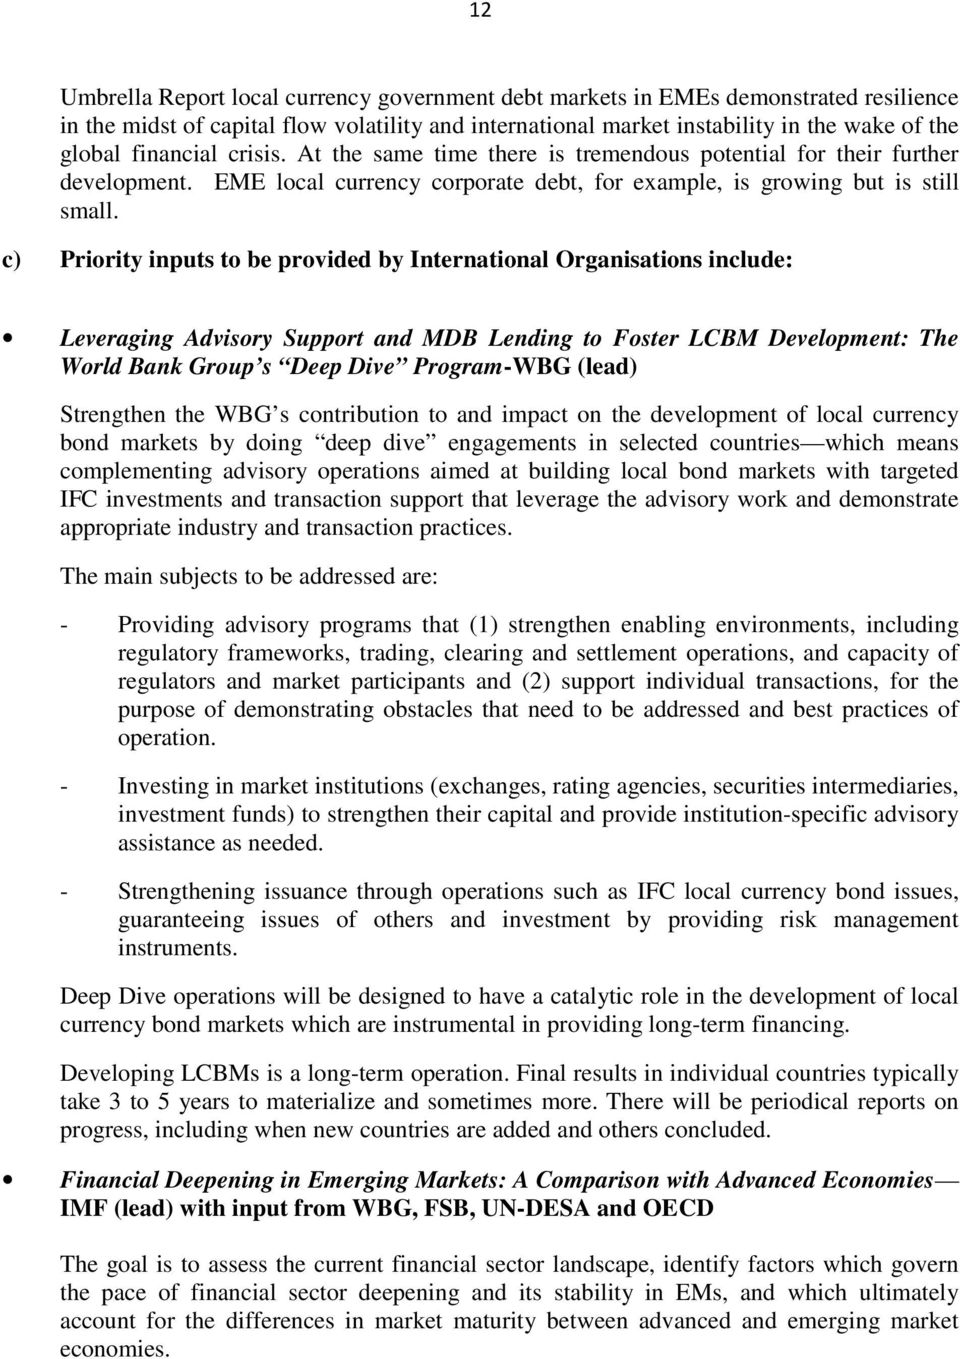 c) Priority inputs to be provided by International Organisations include: Leveraging Advisory Support and MDB Lending to Foster LCBM Development: The World Bank Group s Deep Dive Program-WBG (lead)